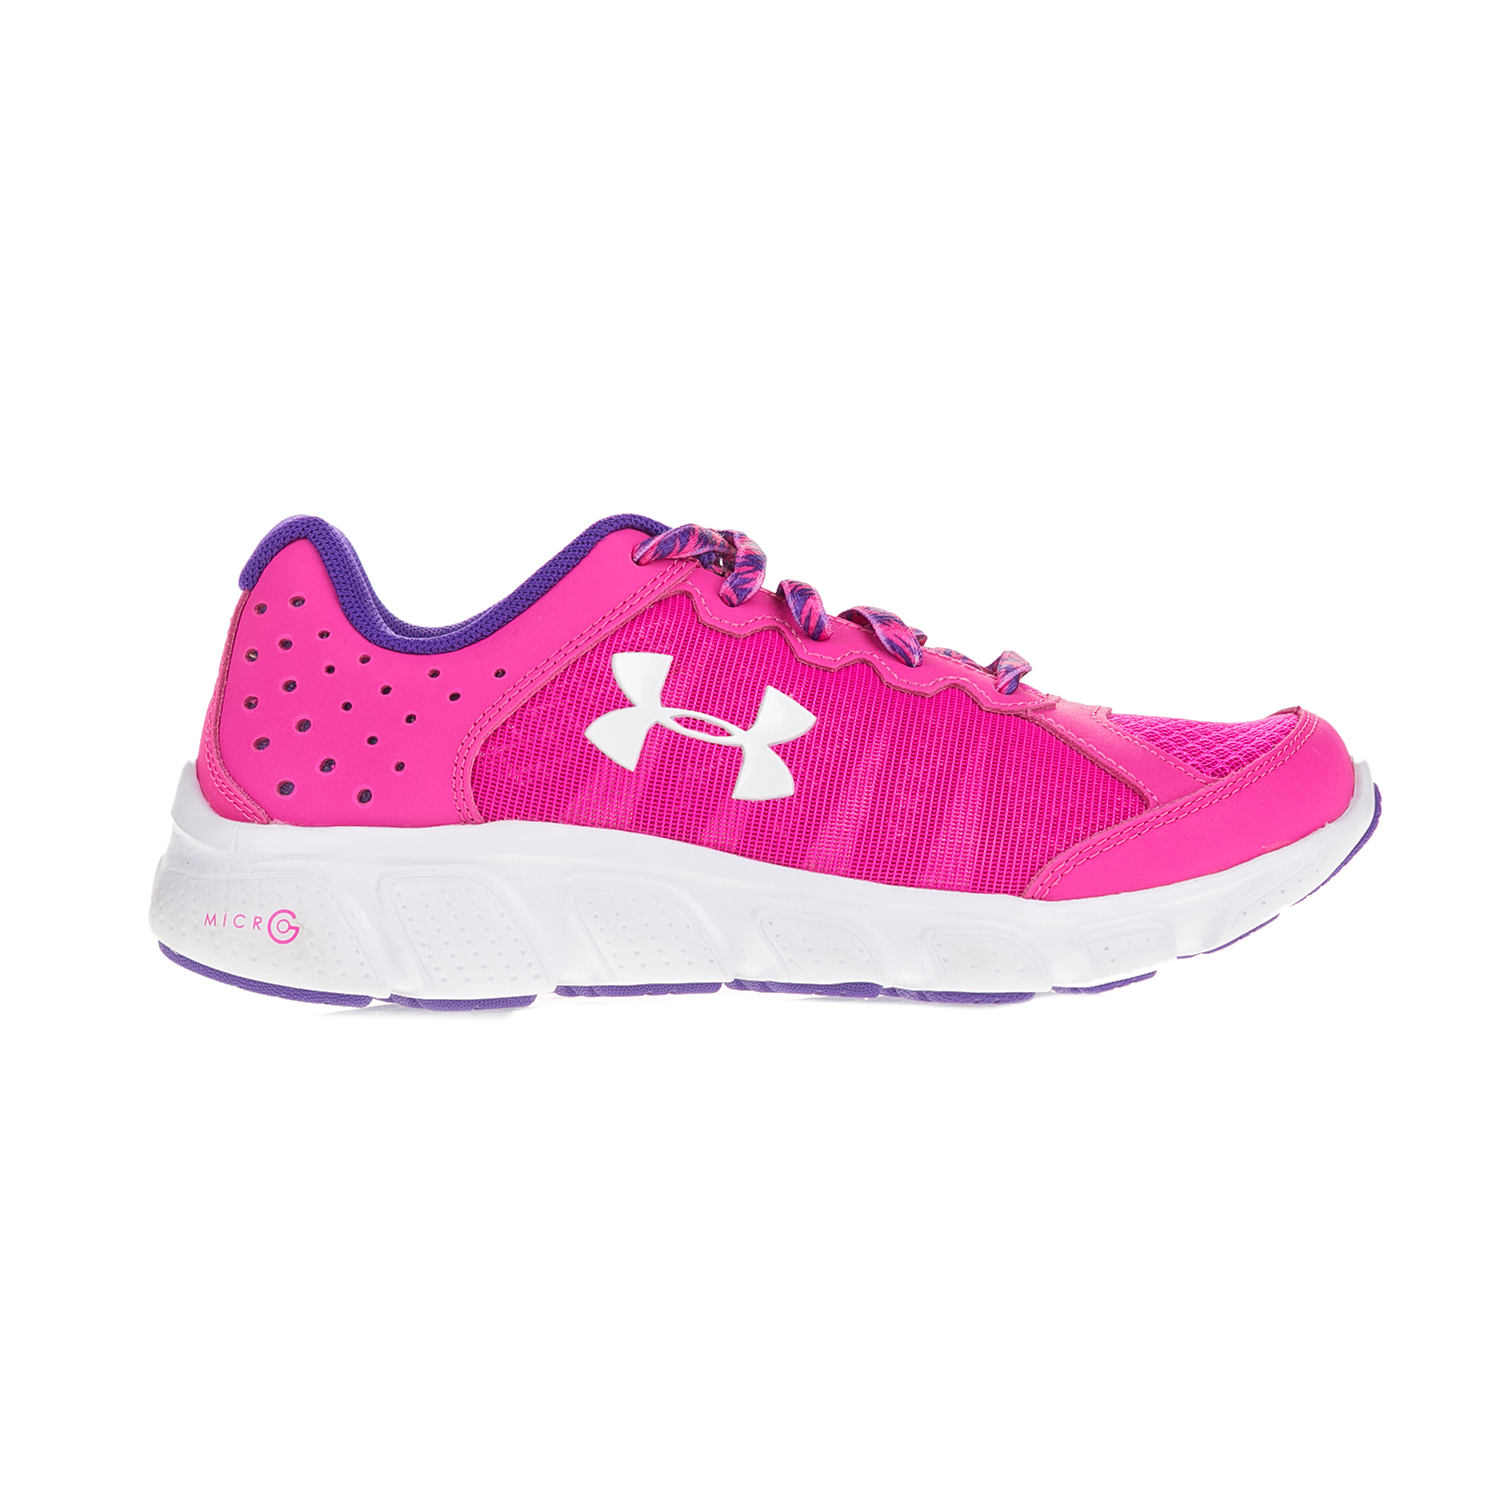 UNDER ARMOUR – Κοριτσίστικα αθλητικά παπούτσια UNDER ARMOUR GGS Micro G Assert 6 φούξια